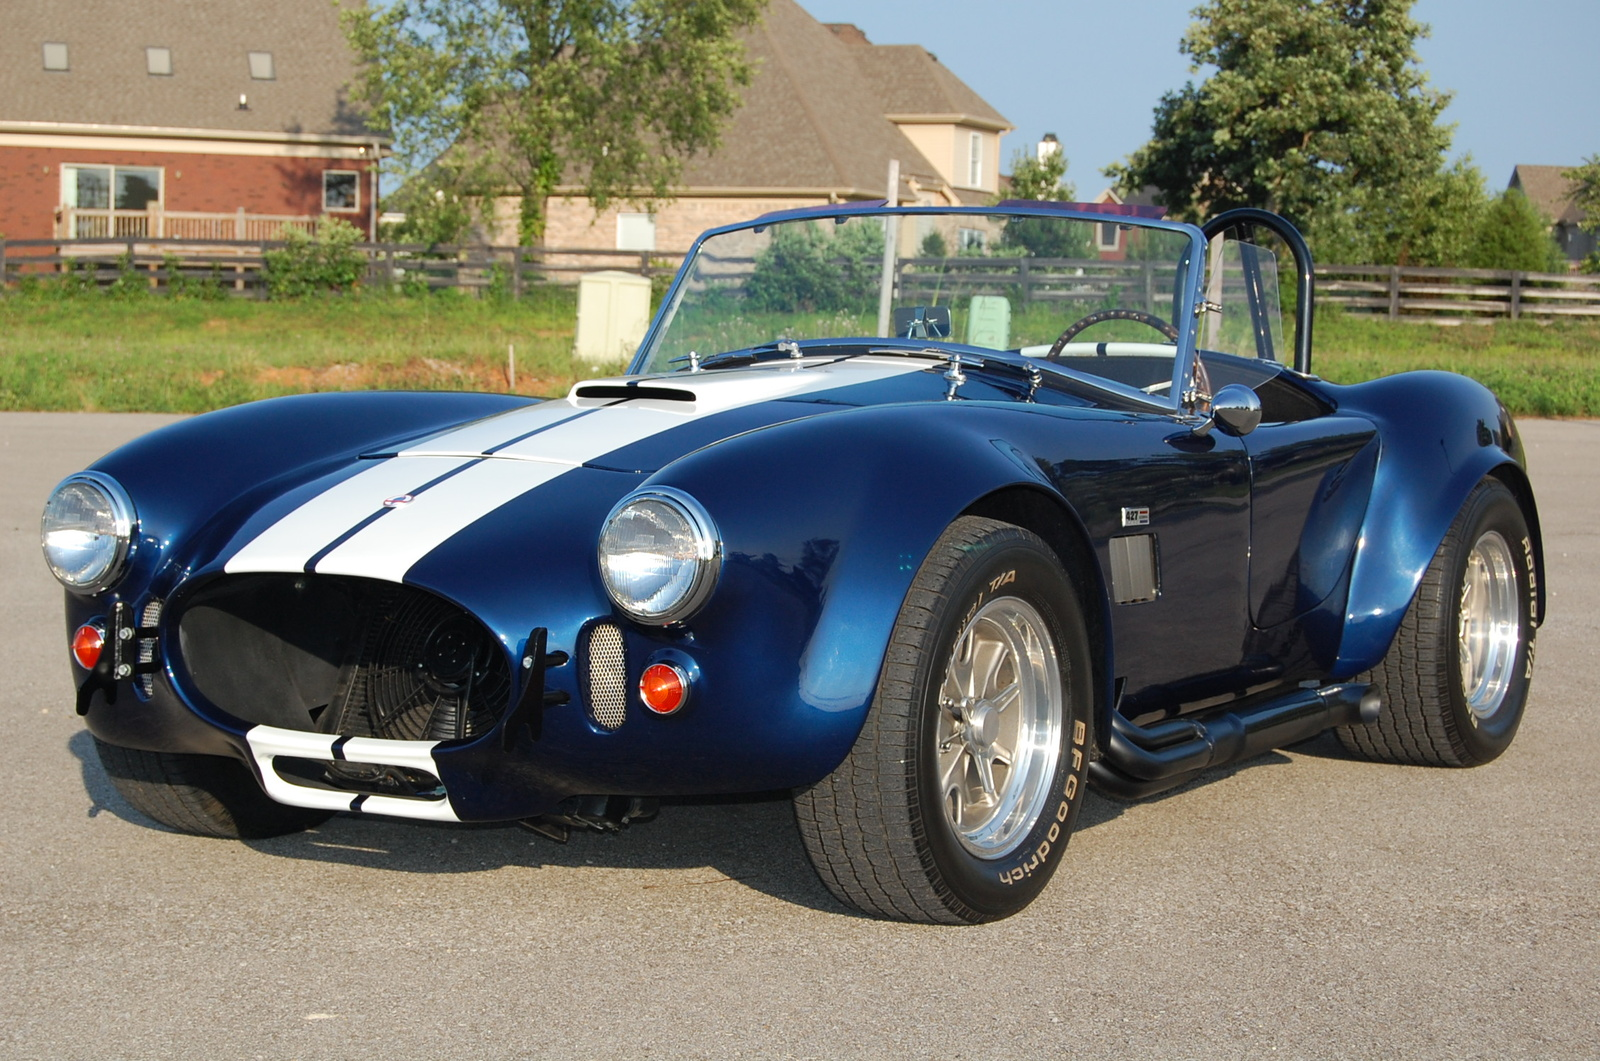 1967 Shelby Cobra - Pictures - CarGurus